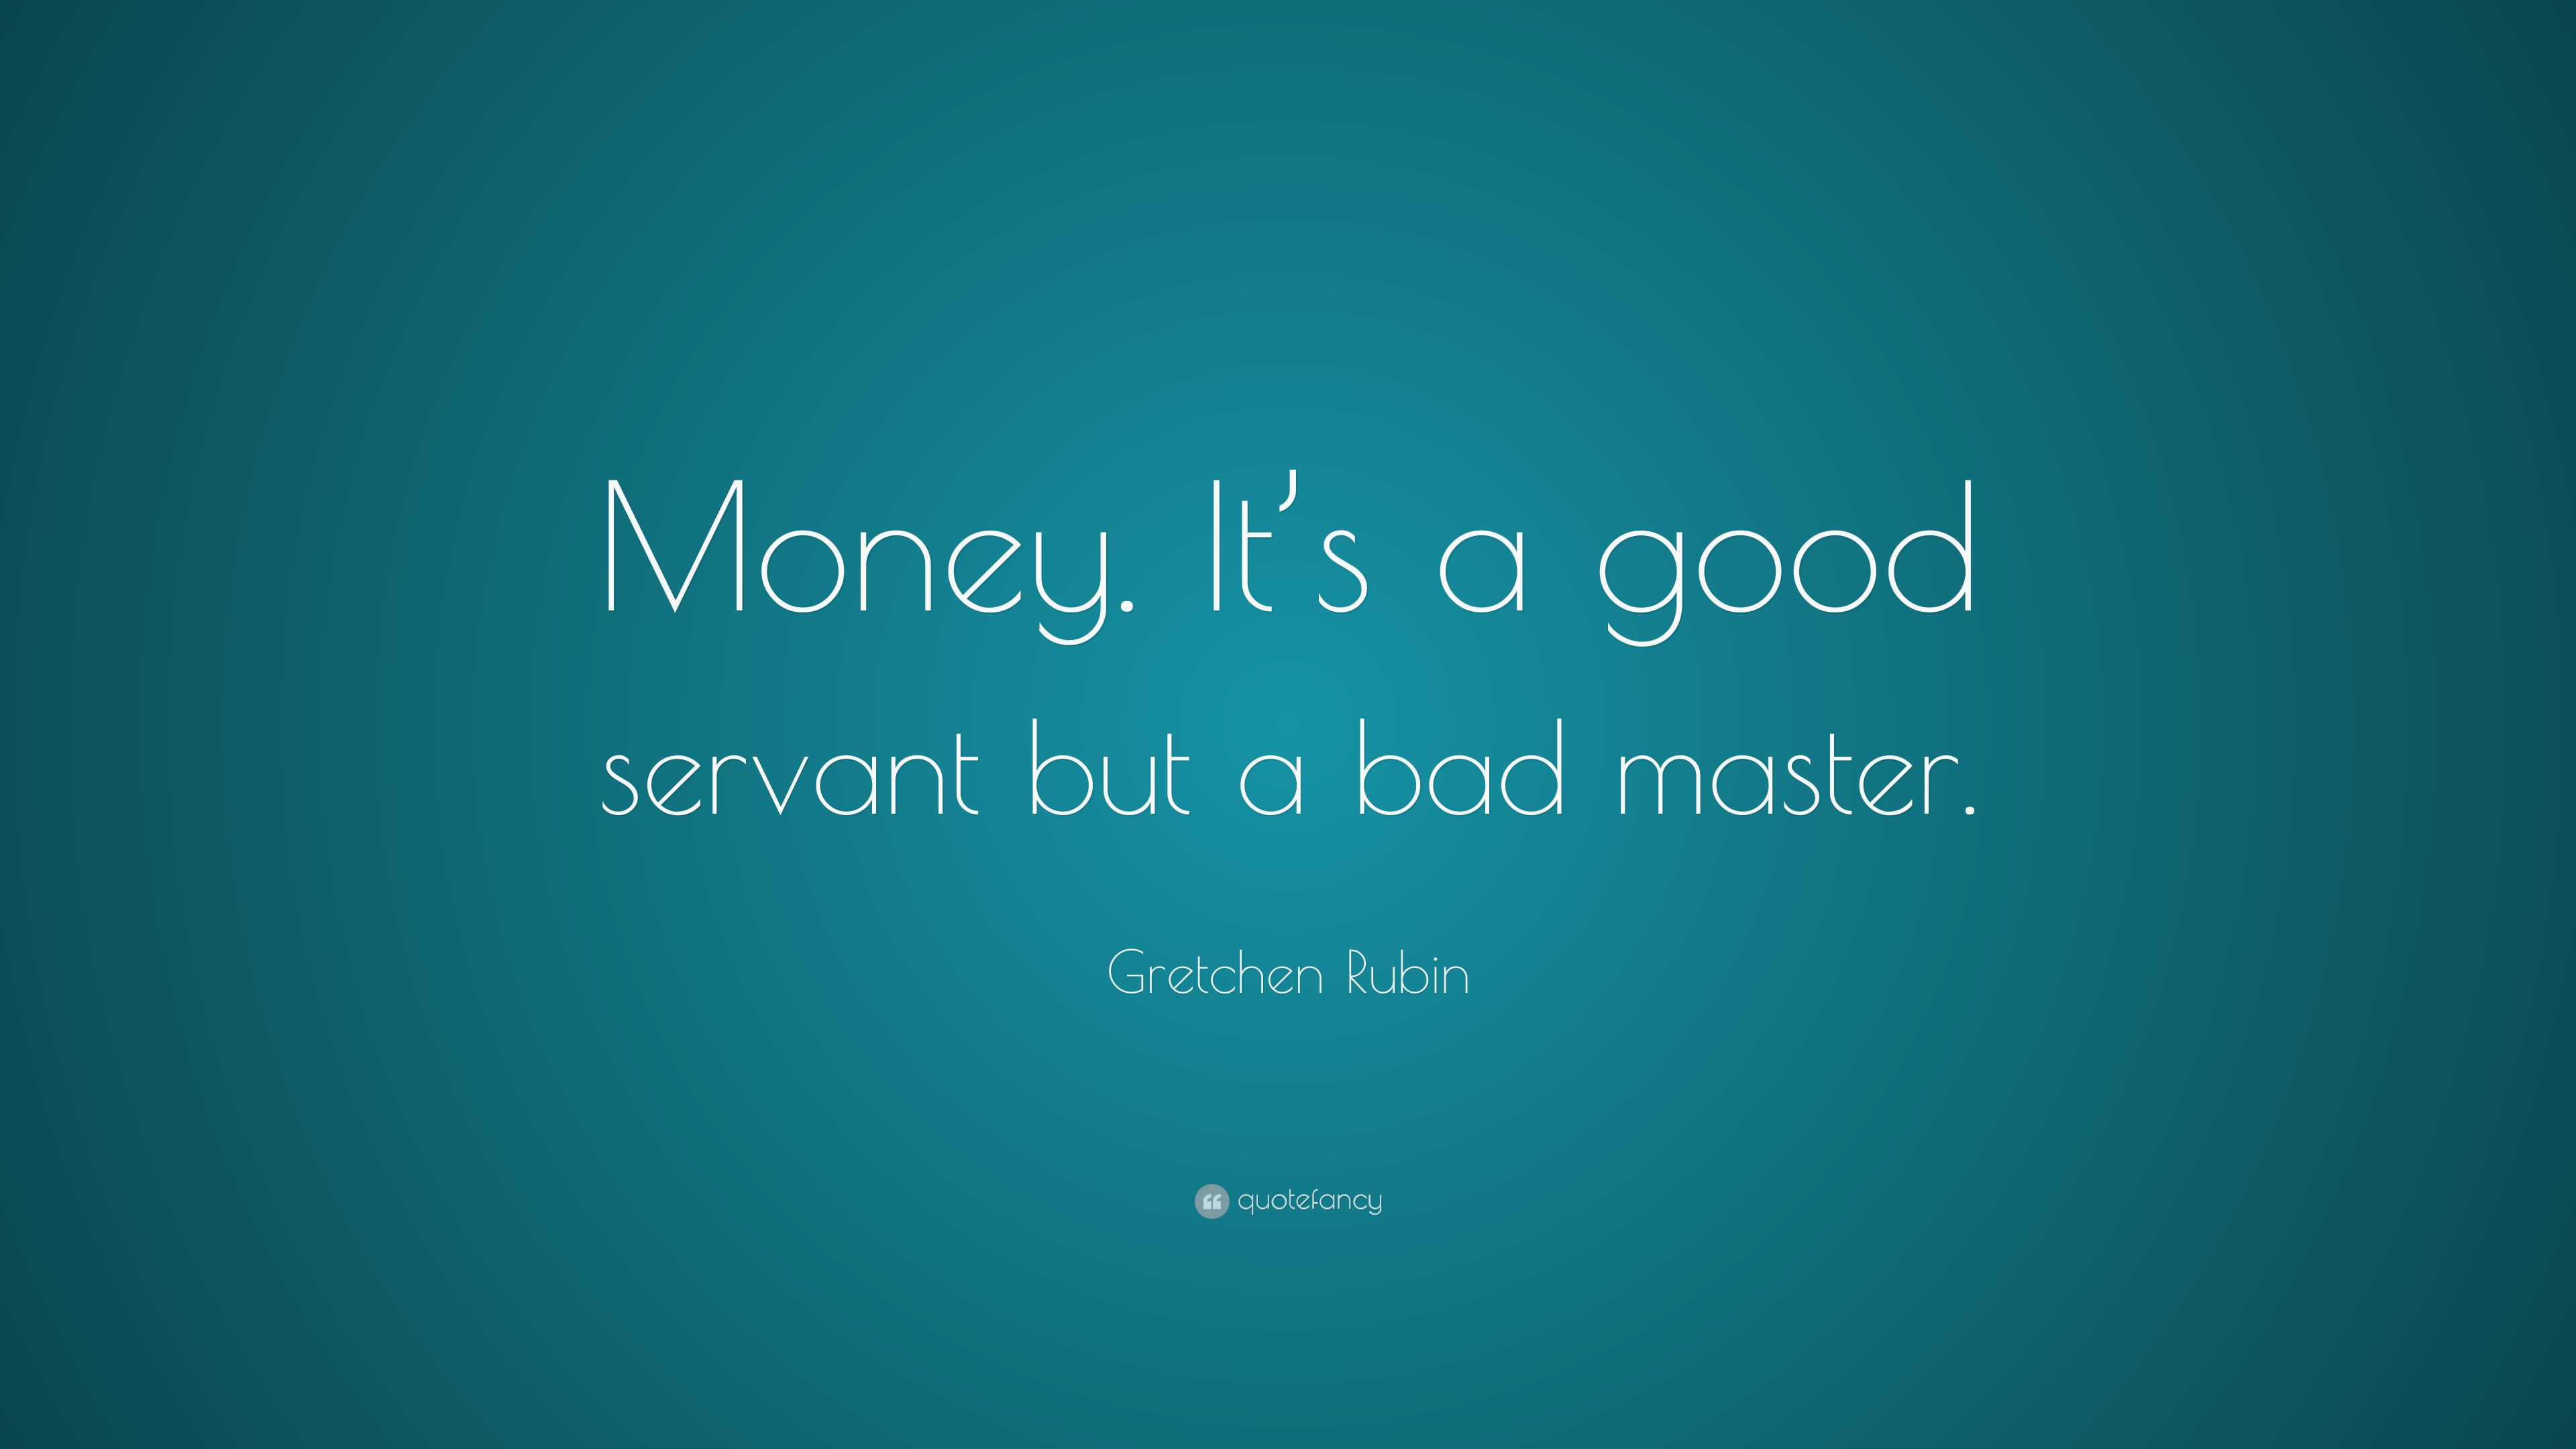 """money a good servant but a He had buried it in the ground (a common way to safe guard one's money in ancient times) and when the master returned, the servant had no increase to offer his master he was not a """"good and faithful"""" servant."""